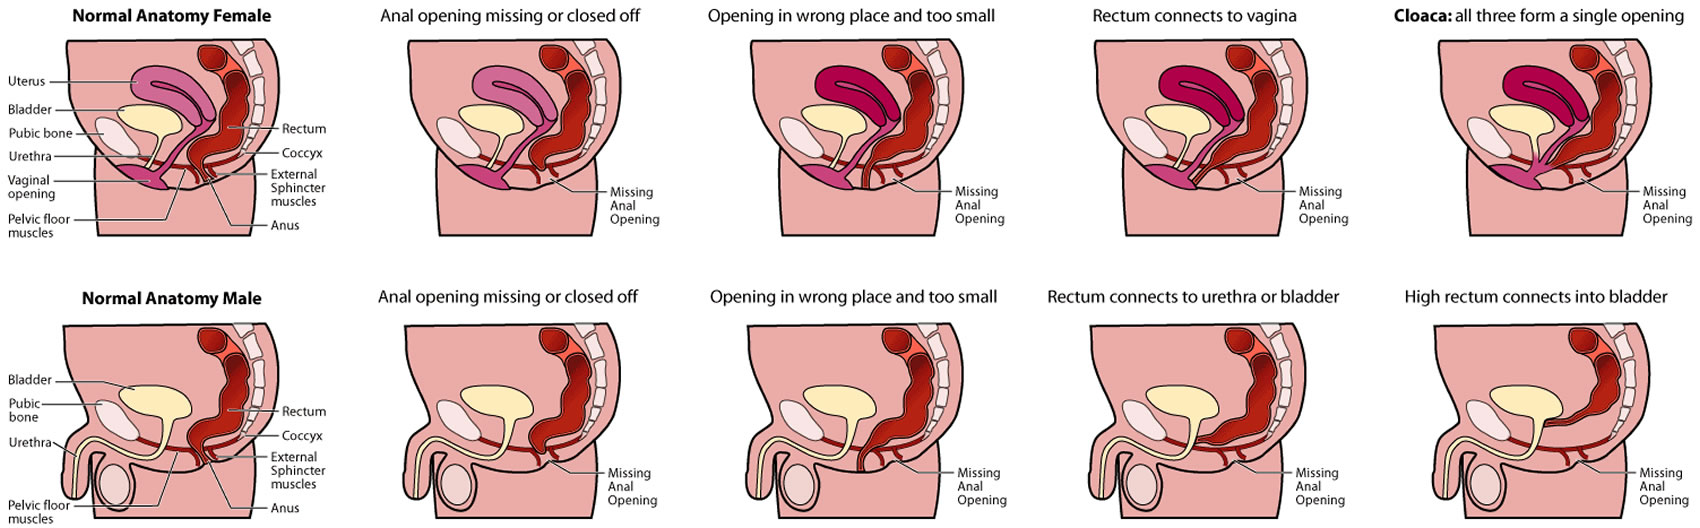 Anorectal malformation types